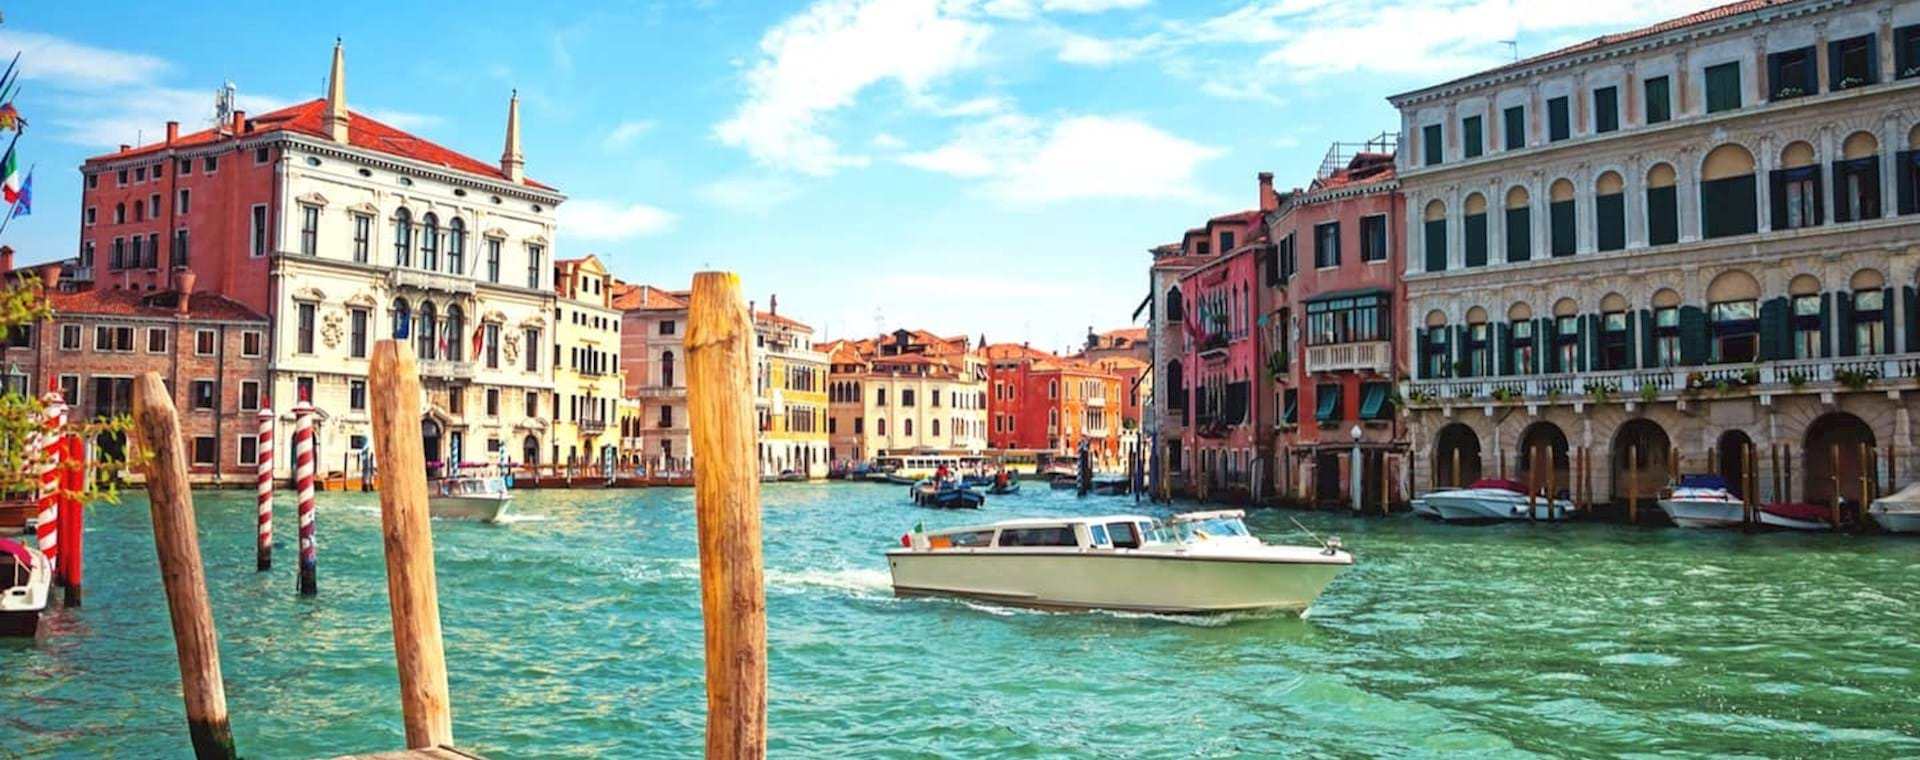 Day Trip: Venice & St. Mark's from Rome by High-Speed Train